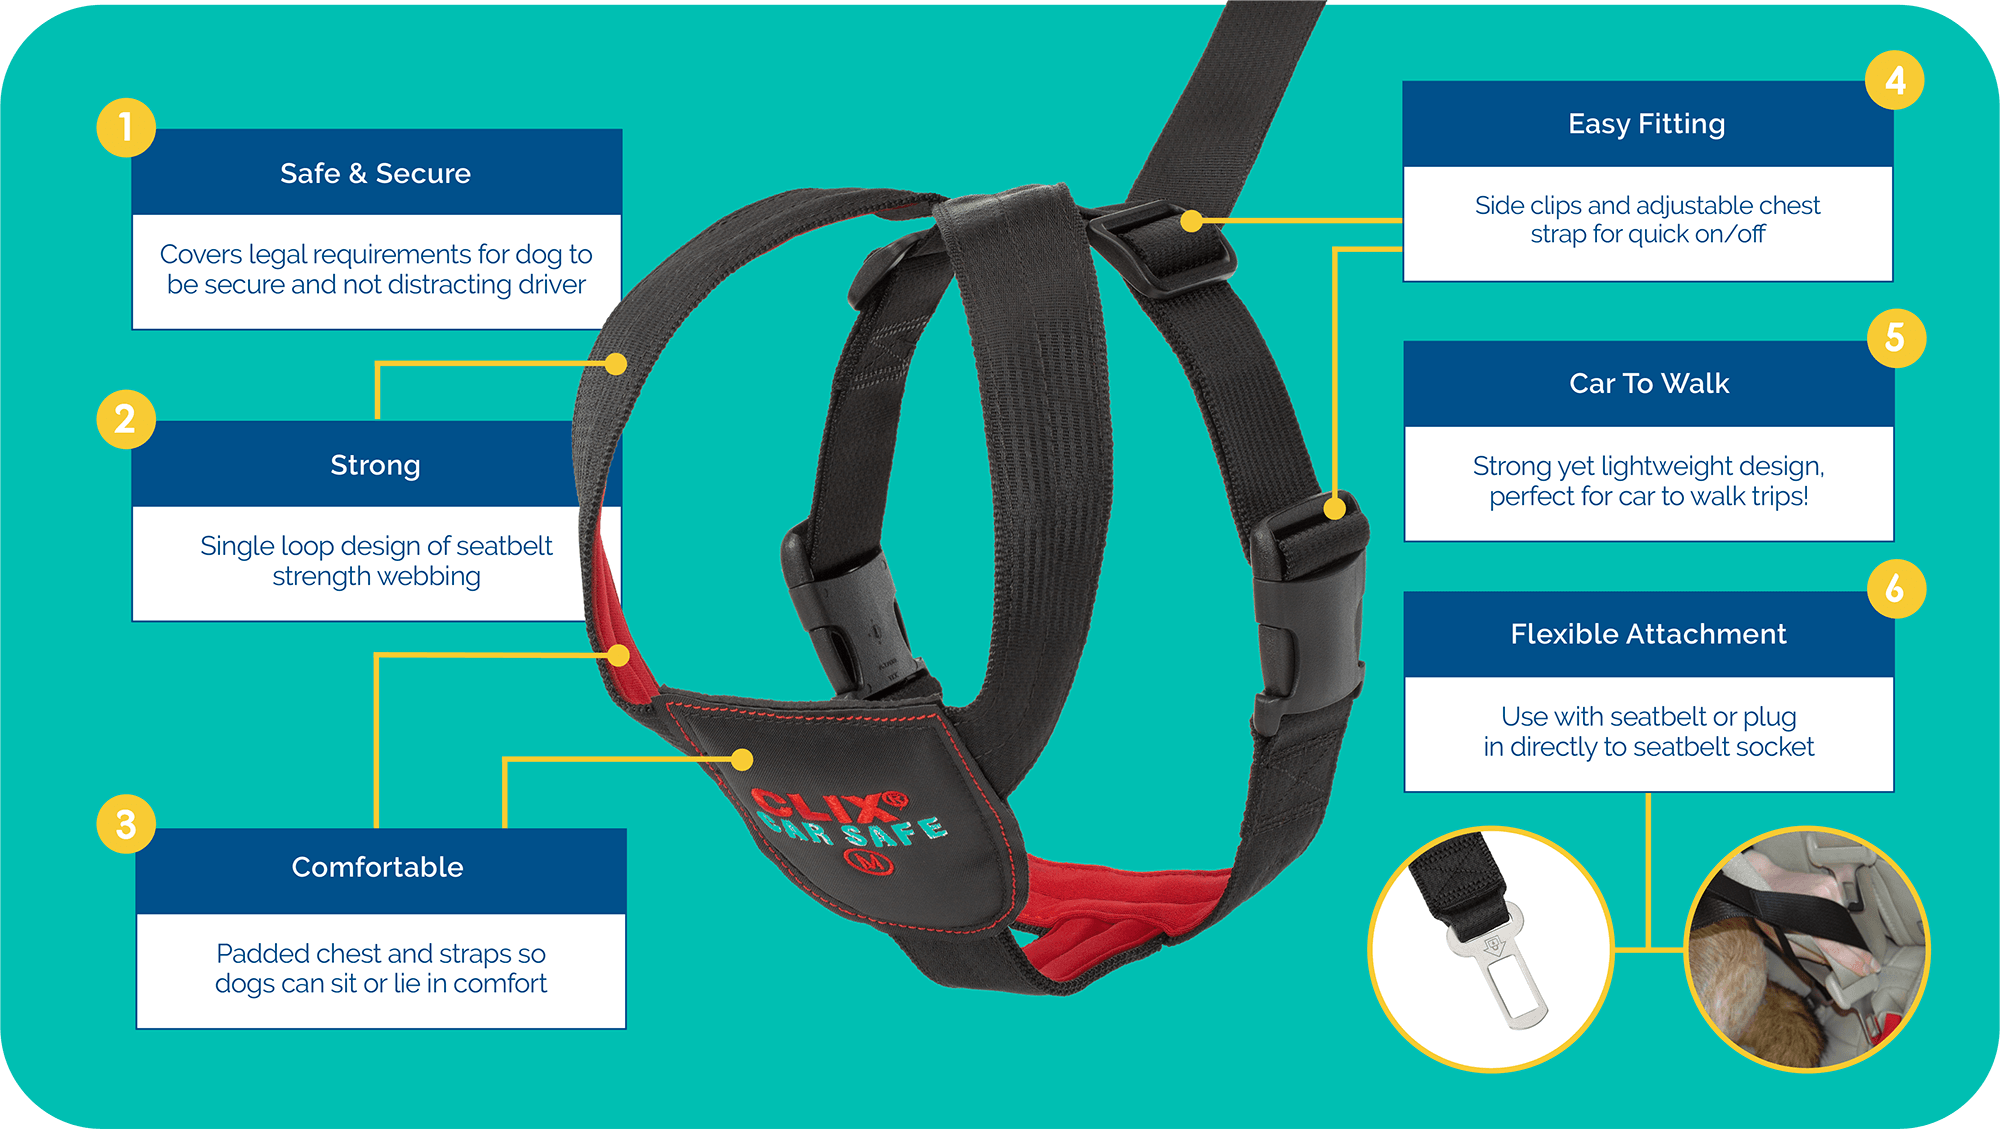 Features guide for CLIX Carsafe harness